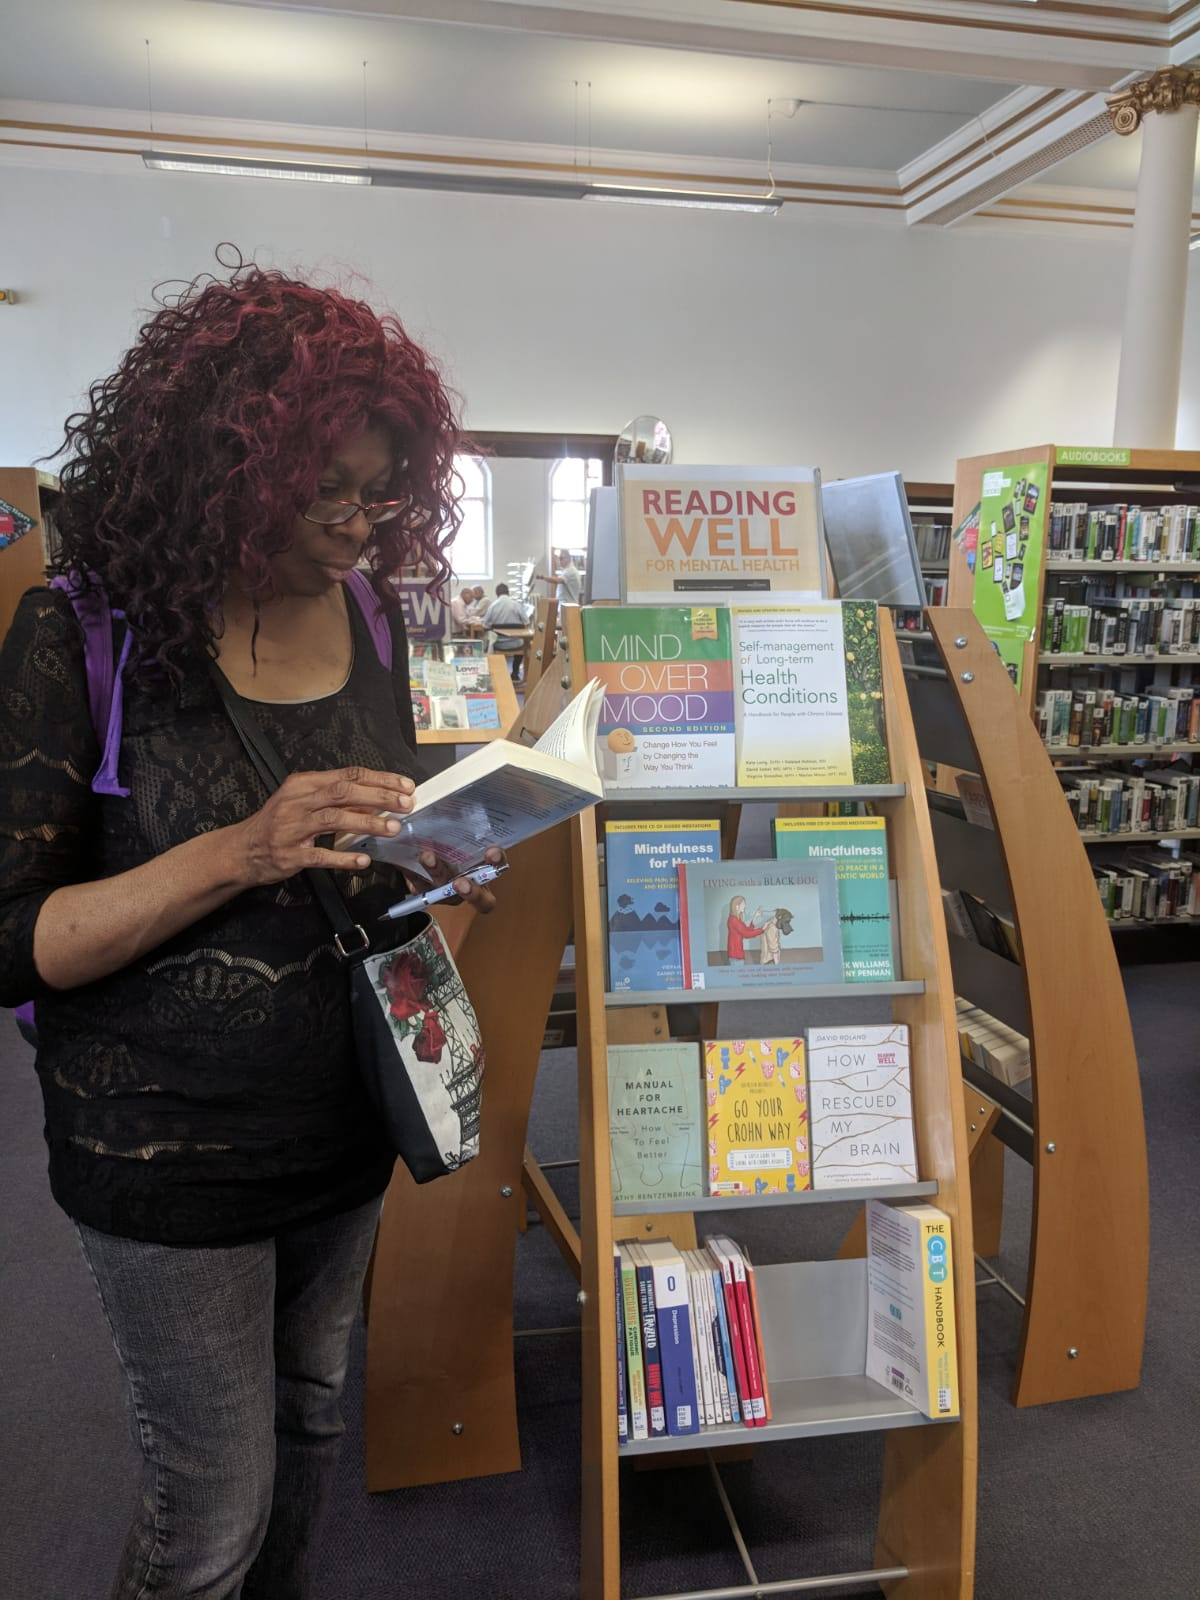 Reading Well For Mental Health. Ann-Marie Deans making the most of Emotional Health books now available for young people and adults in Wolverhampton Libraries.